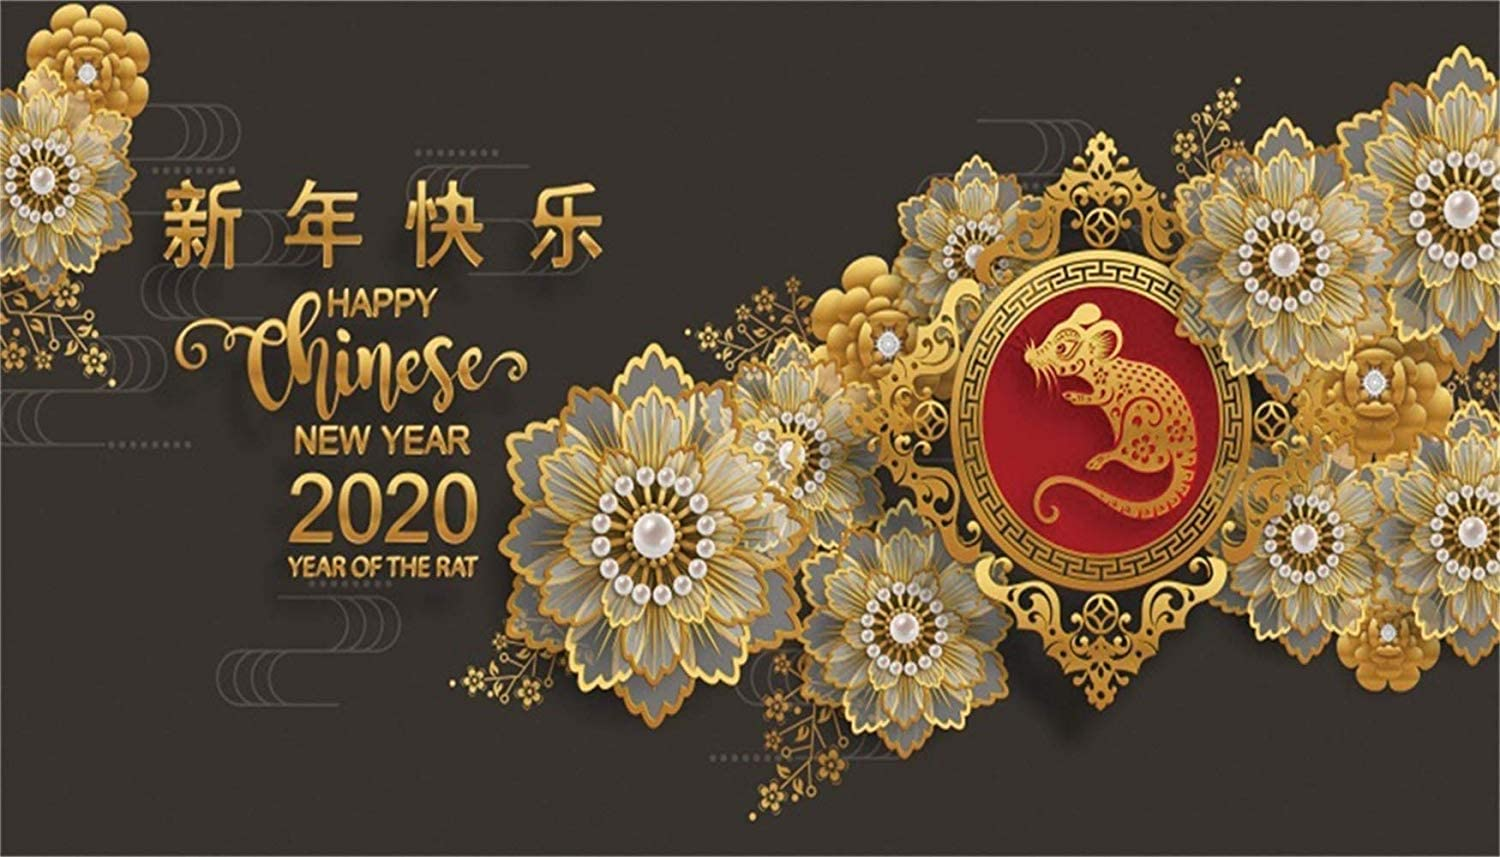 15x8ft Happy Chinese New Year 2020 Year of The Rat Backdrop Vinyl Chinese Style Mouse Paper-Cut Golden Lace Flowers Photography Background New Year Carnival Party Banner Wallpaper Studio